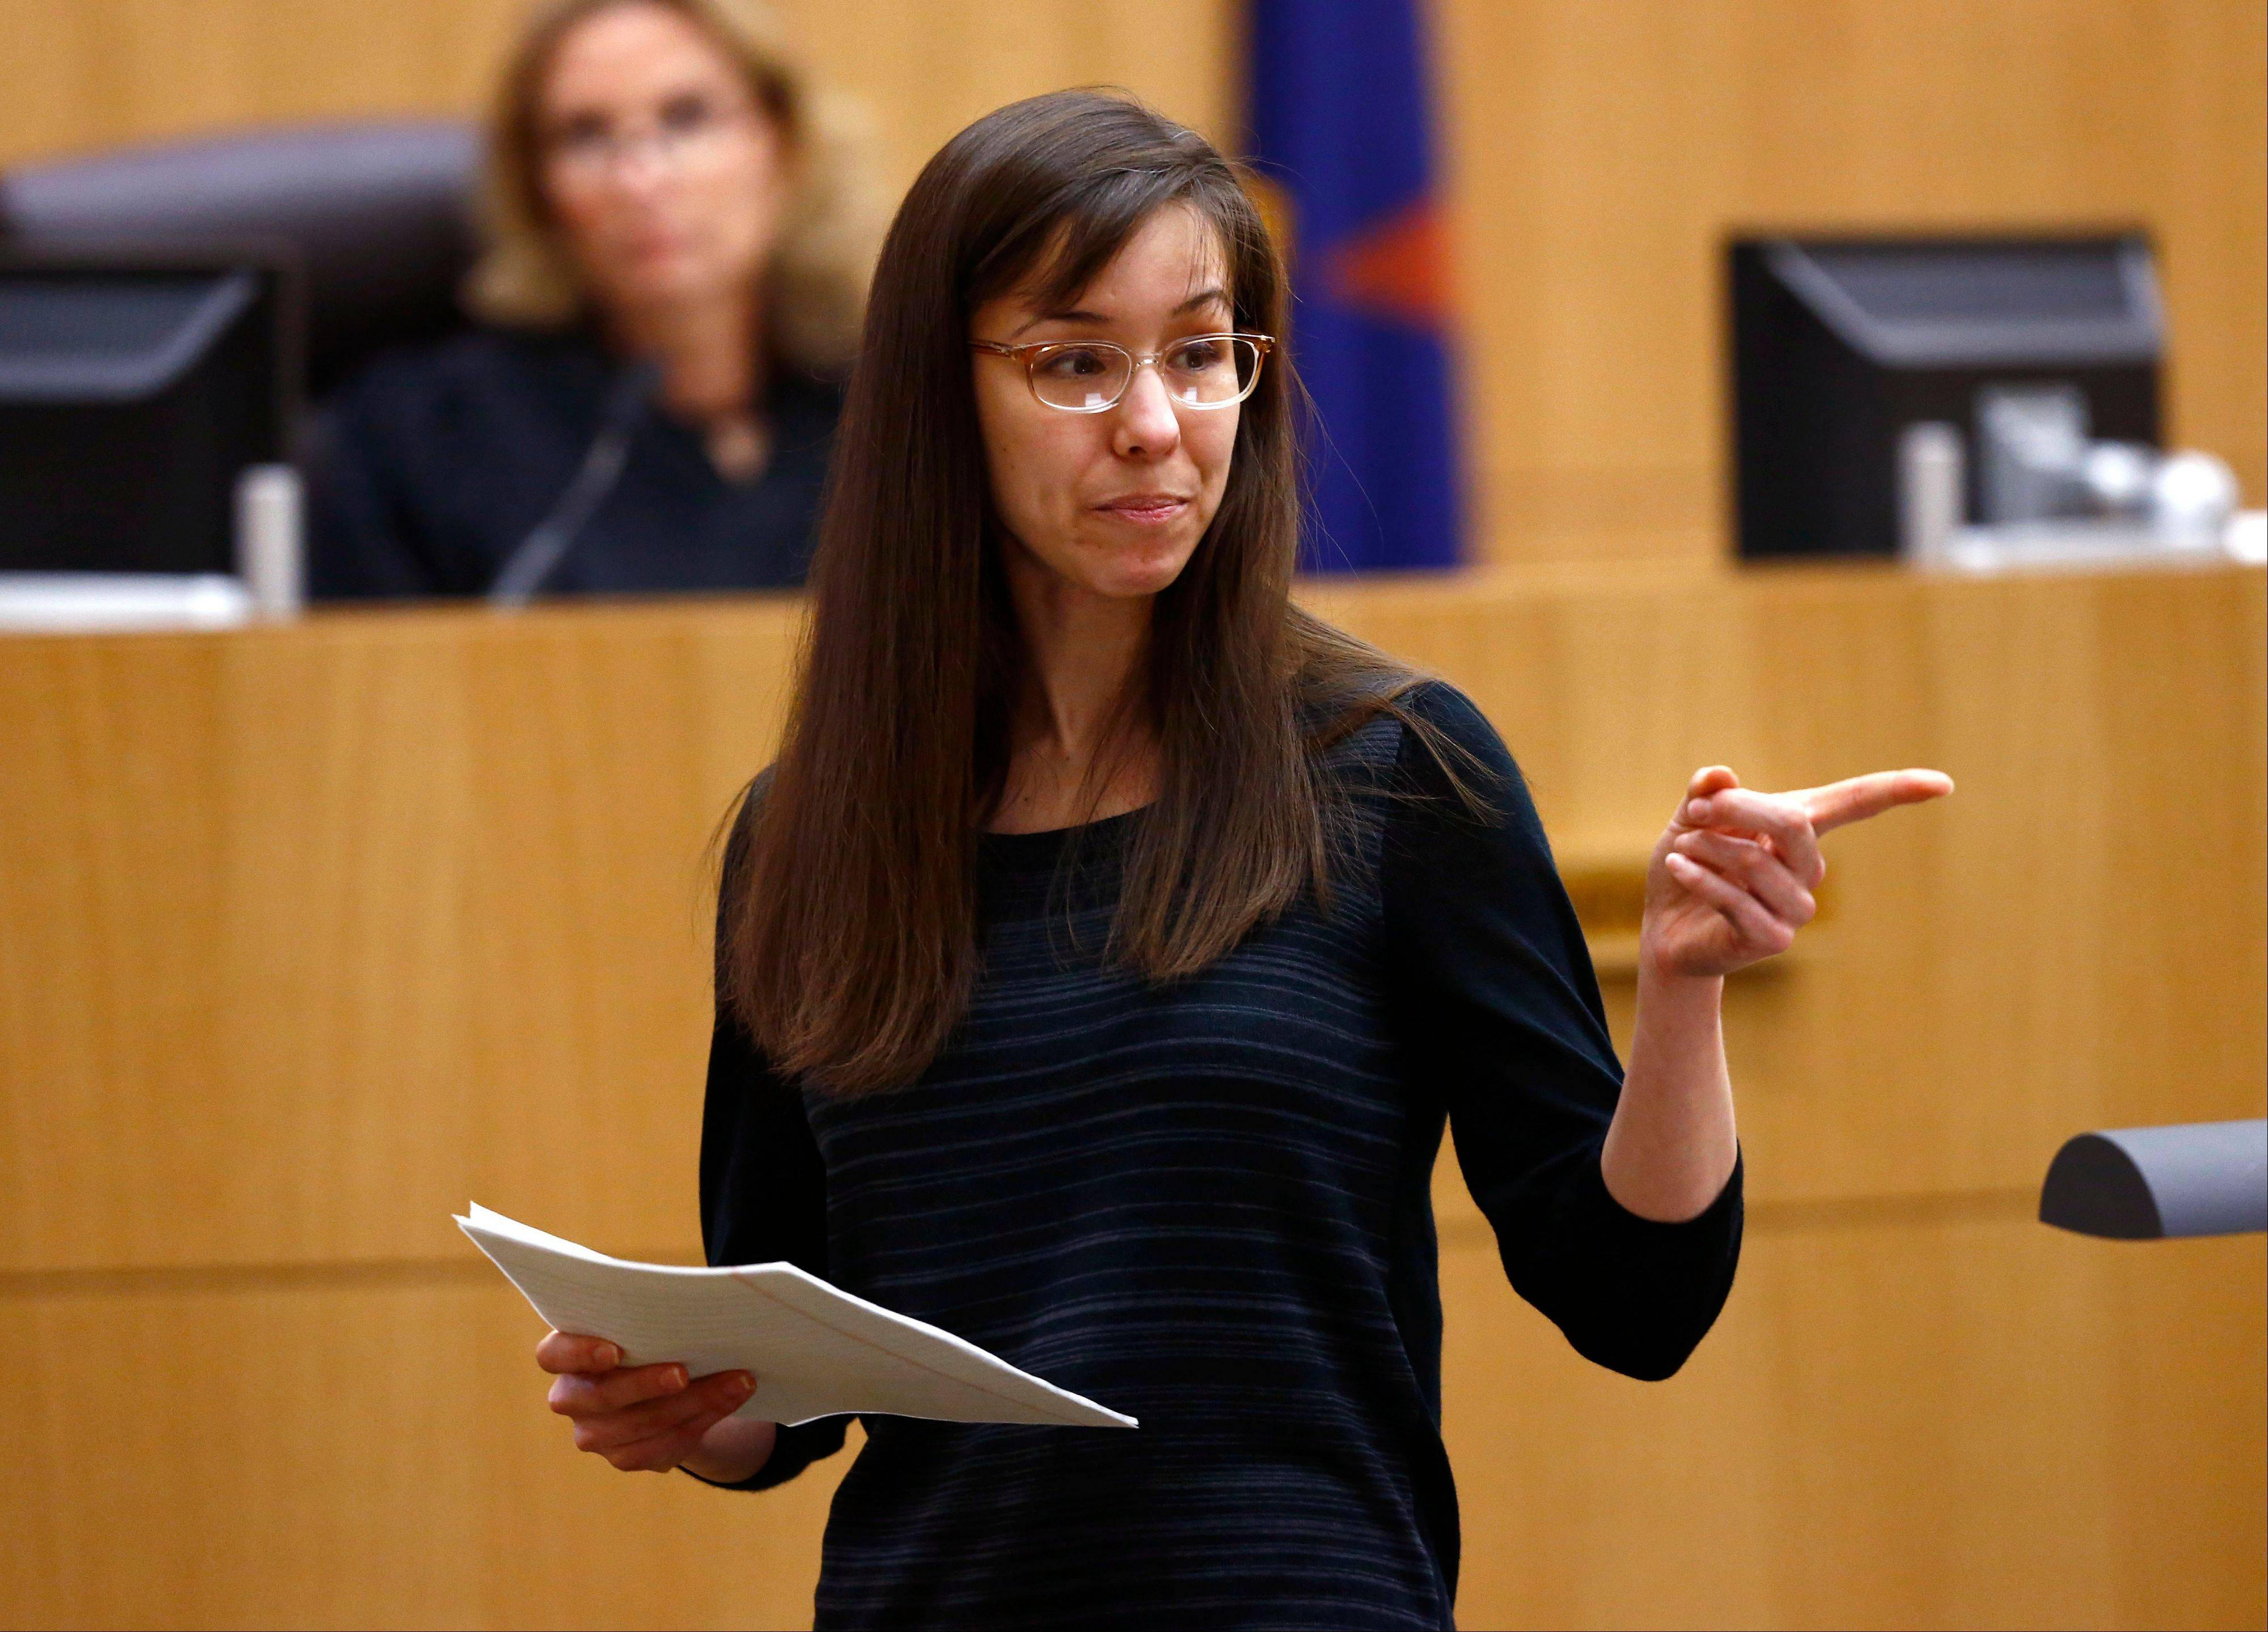 Jodi Arias points to her family as a reason for the jury to give her a life in prison sentence instead of the death penalty on Tuesday during the penalty phase of her murder trial at Maricopa County Superior Court in Phoenix. Arias was convicted of first-degree murder in the stabbing and shooting to death of Travis Alexander, 30, in suburban Phoenix.